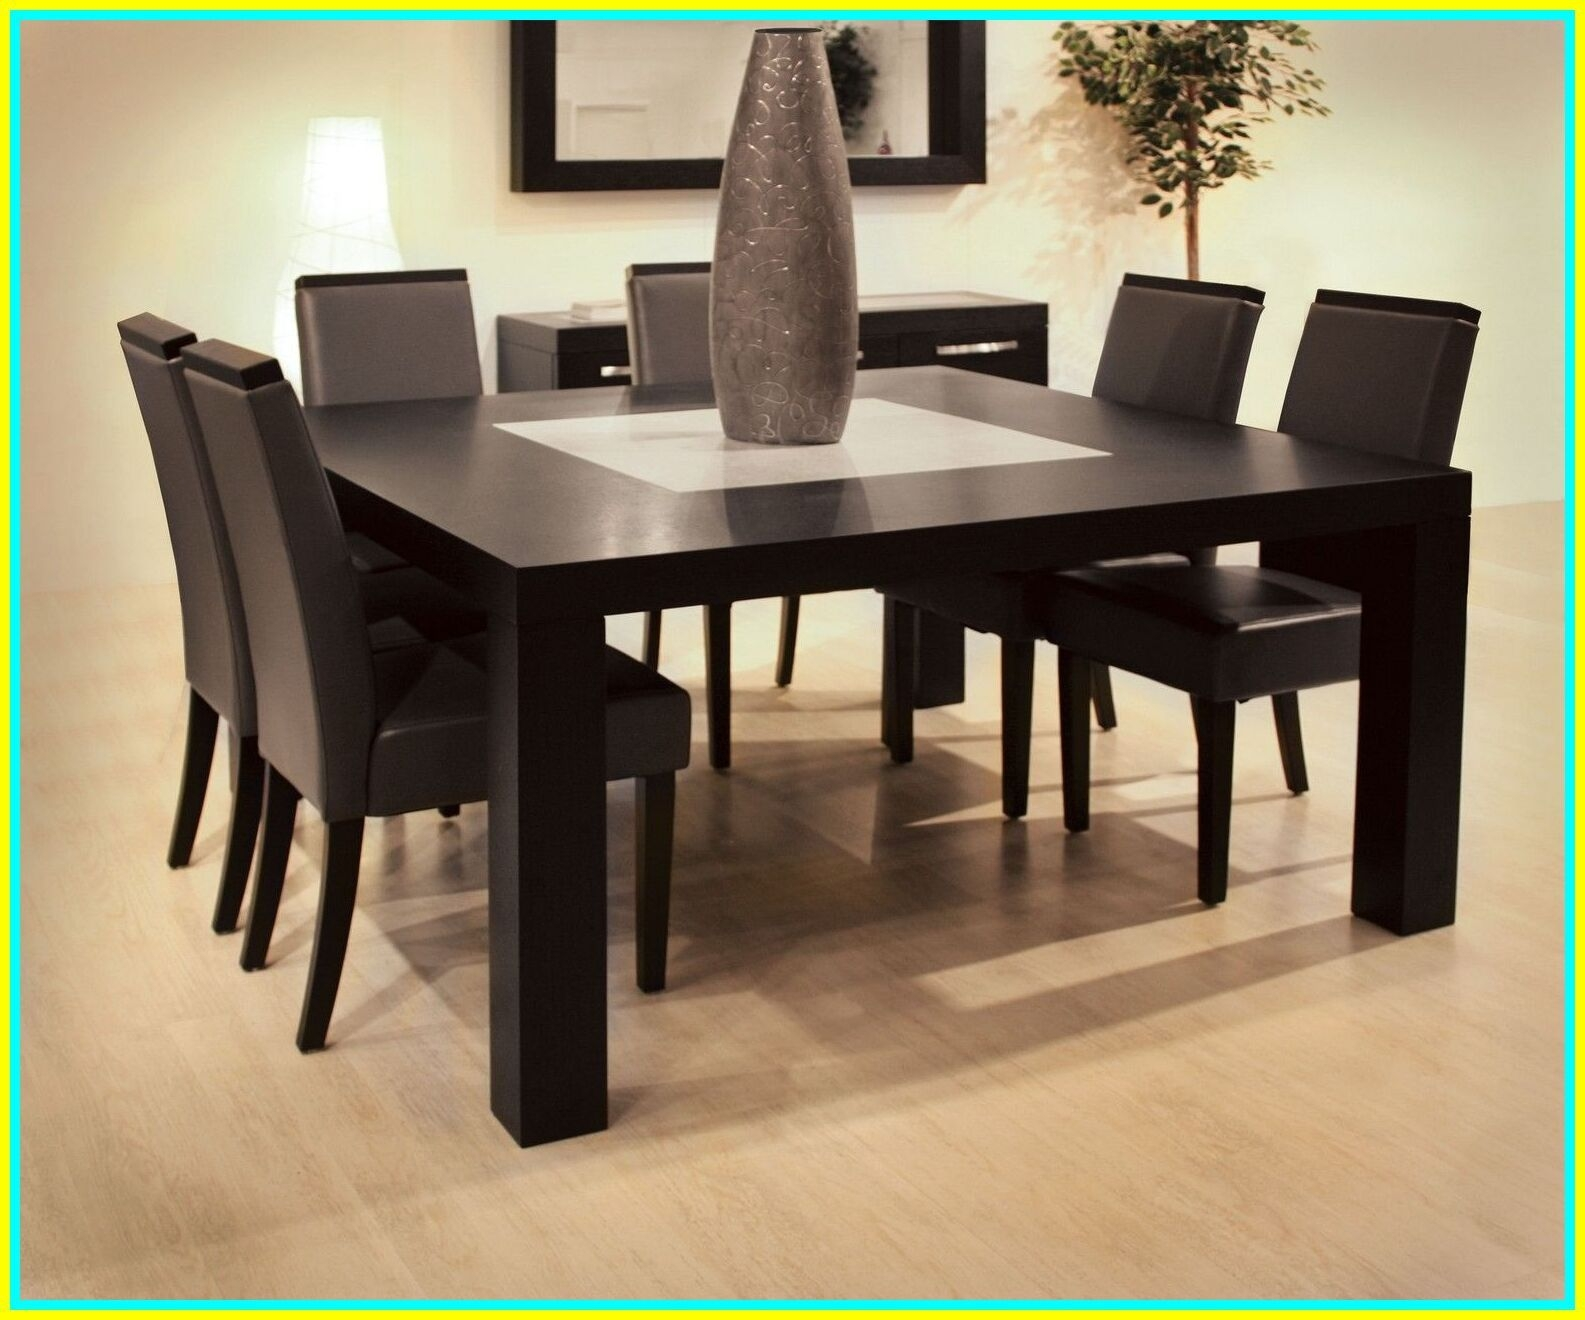 Square Dining Table For 6 You Ll Love In 2021 Visualhunt